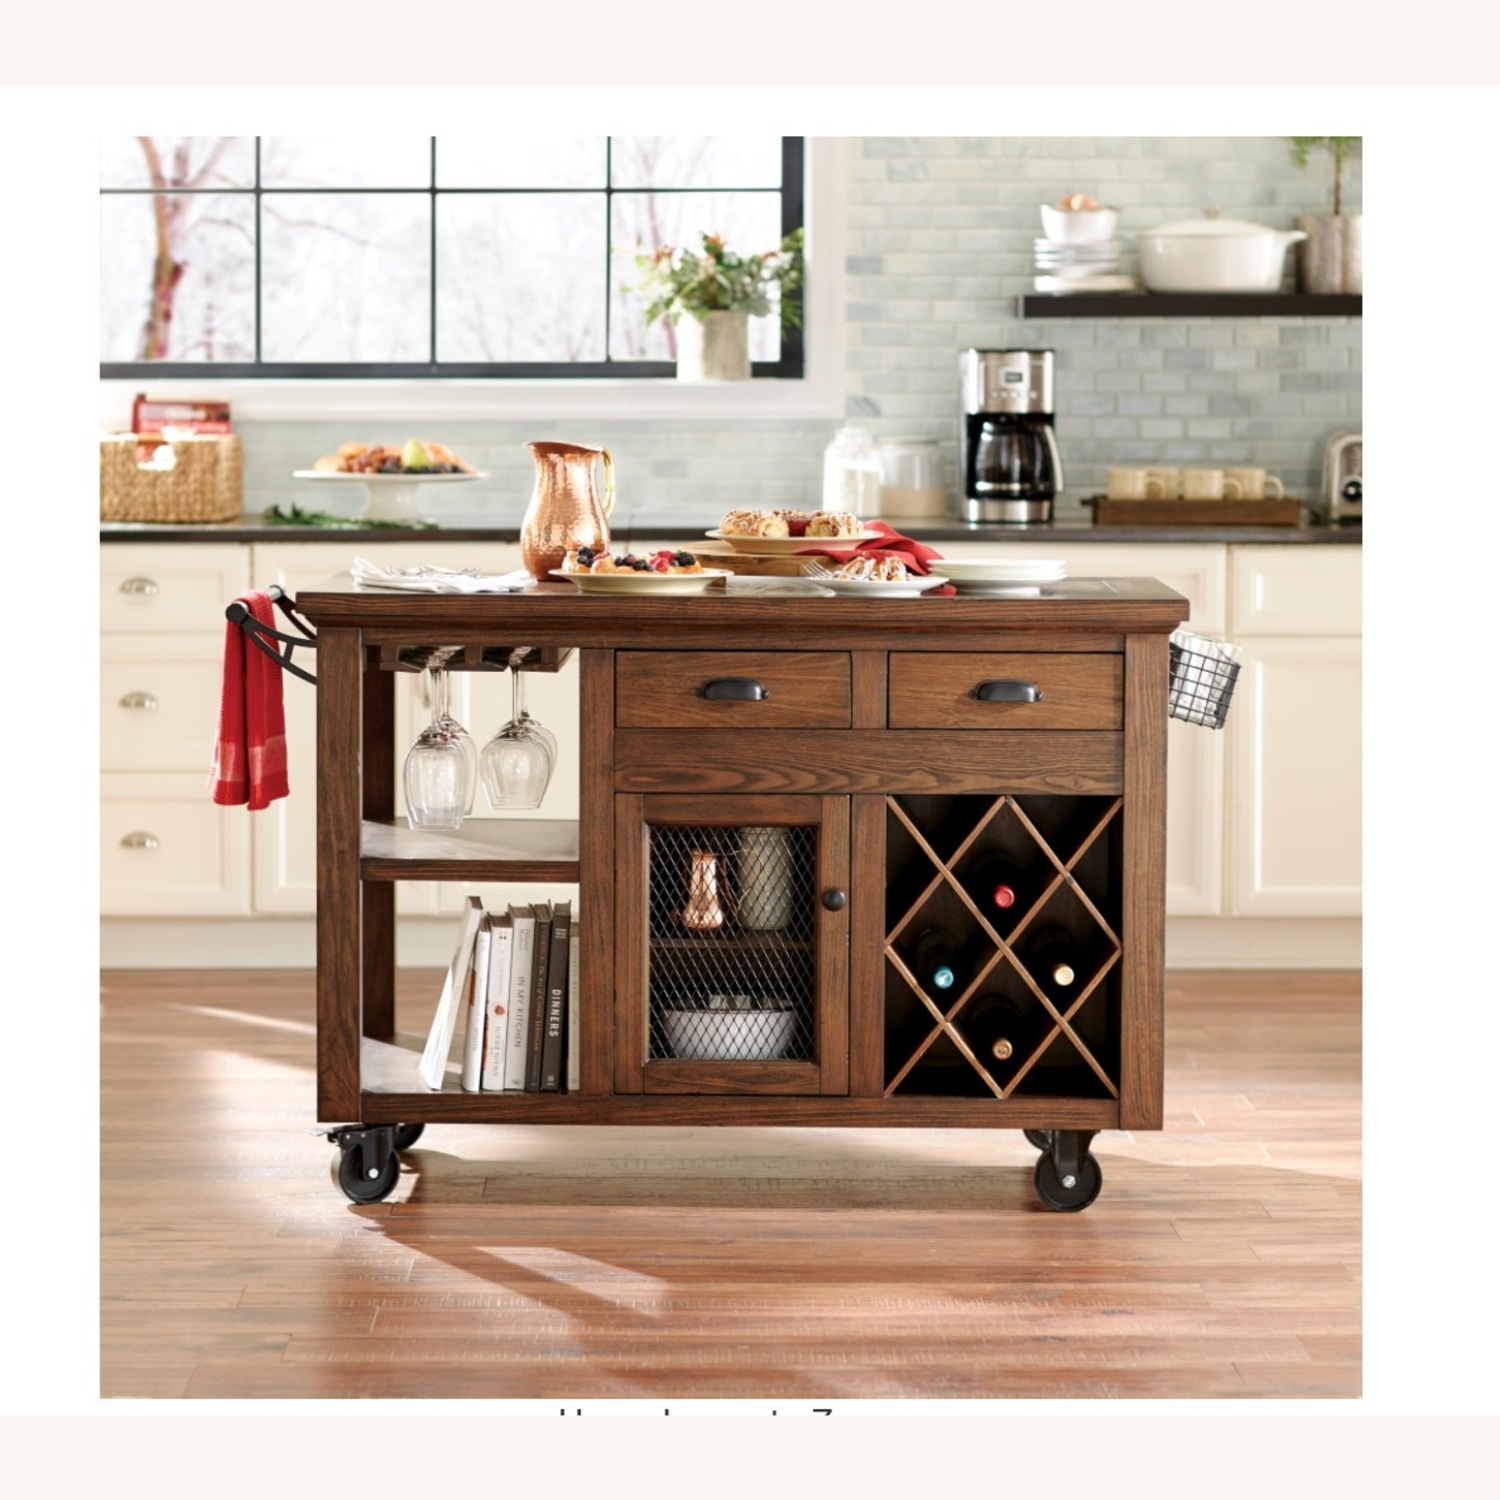 Cooper Rustic Walnut Kitchen Cart with Storage - image-5